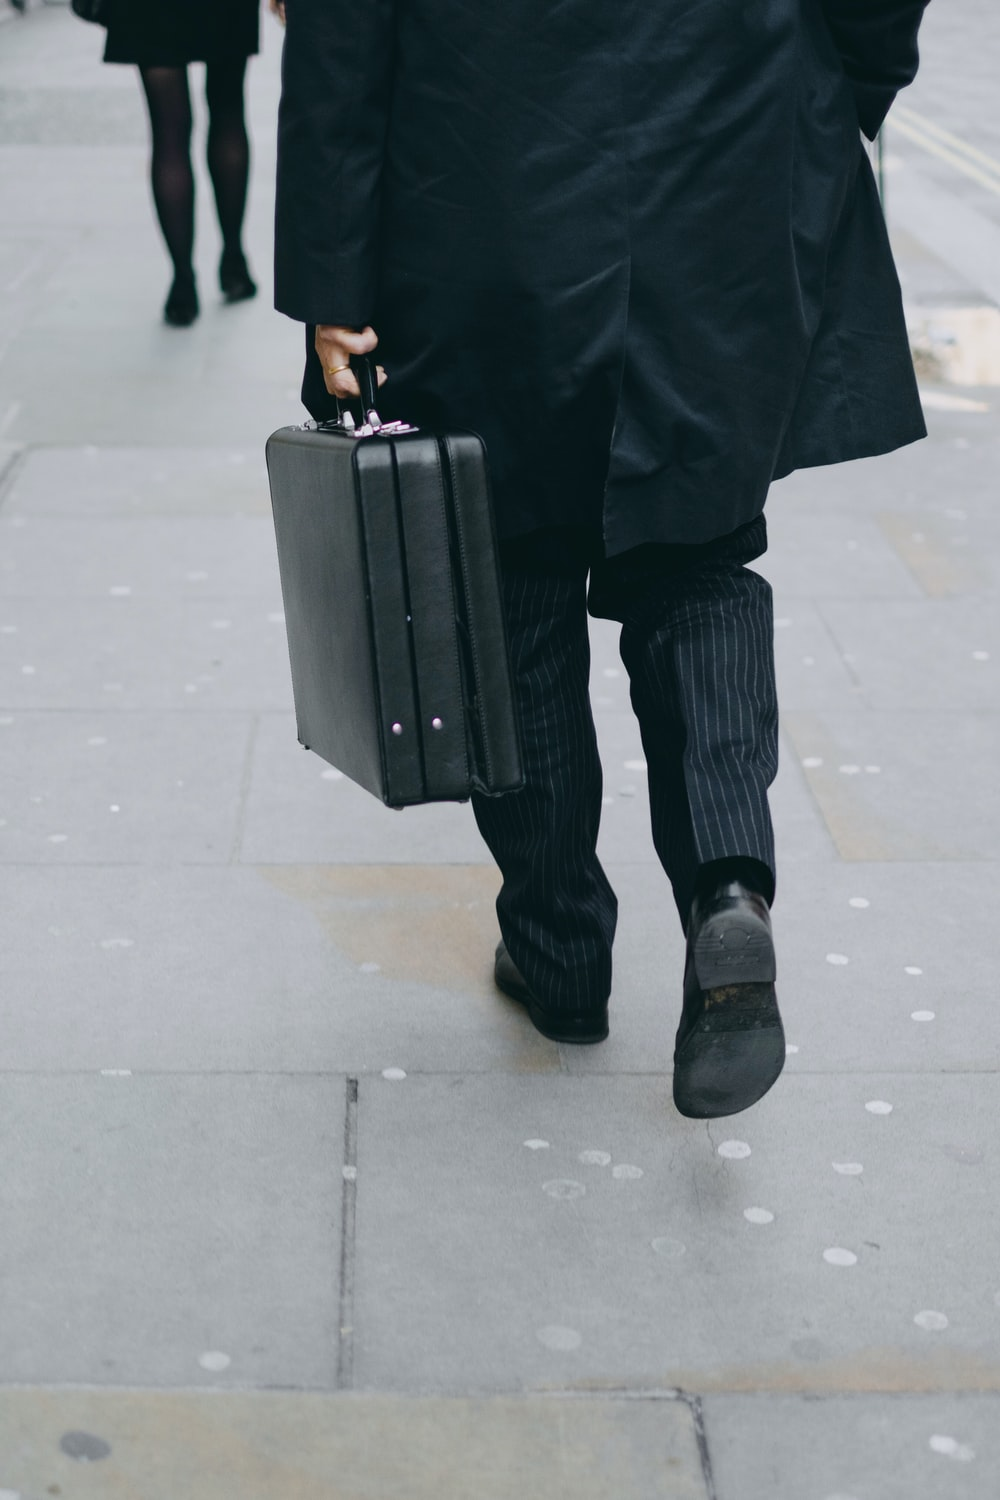 person carrying suit case while walking on pavement